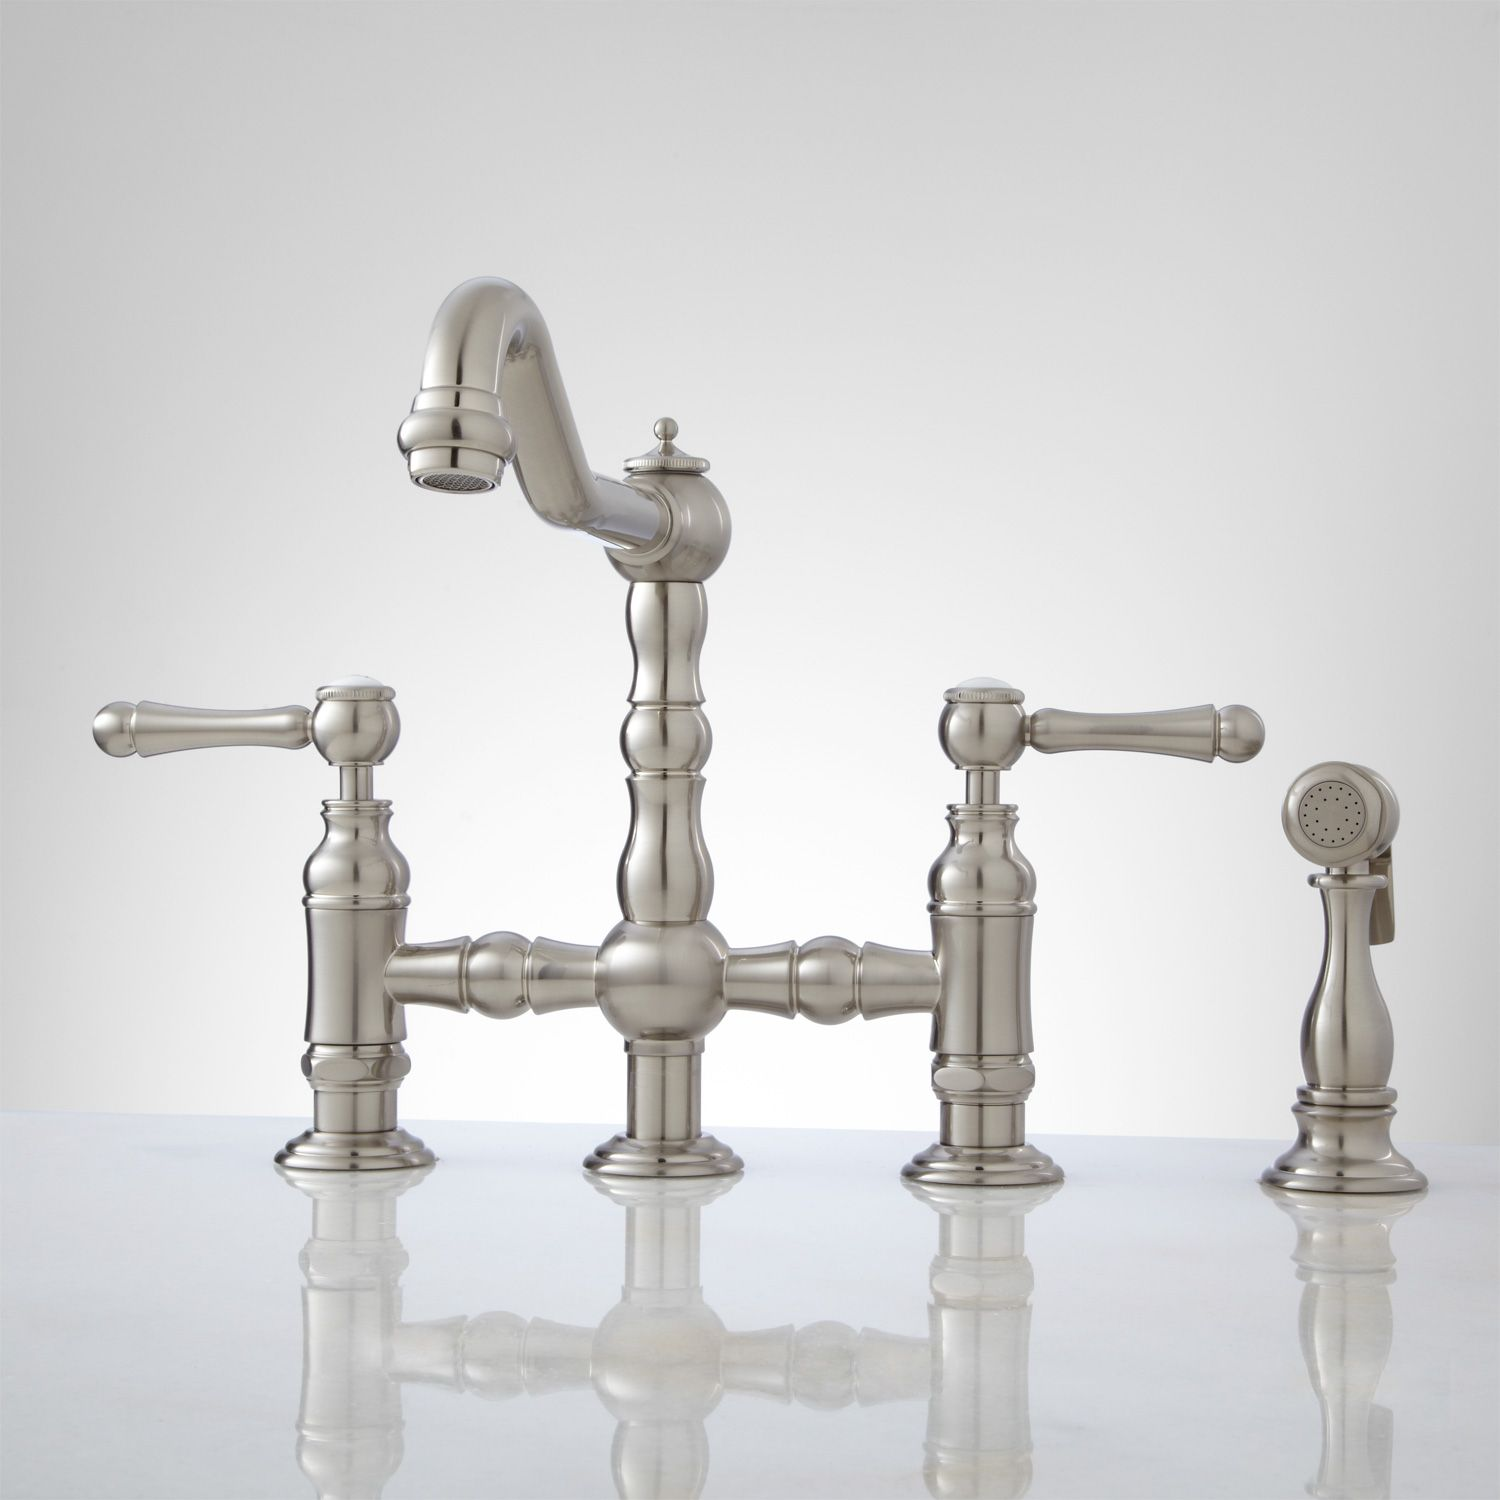 Rohl Country Kitchen Faucet Delilah Deck Mount Bridge Faucet With Side Spray Lever Handles